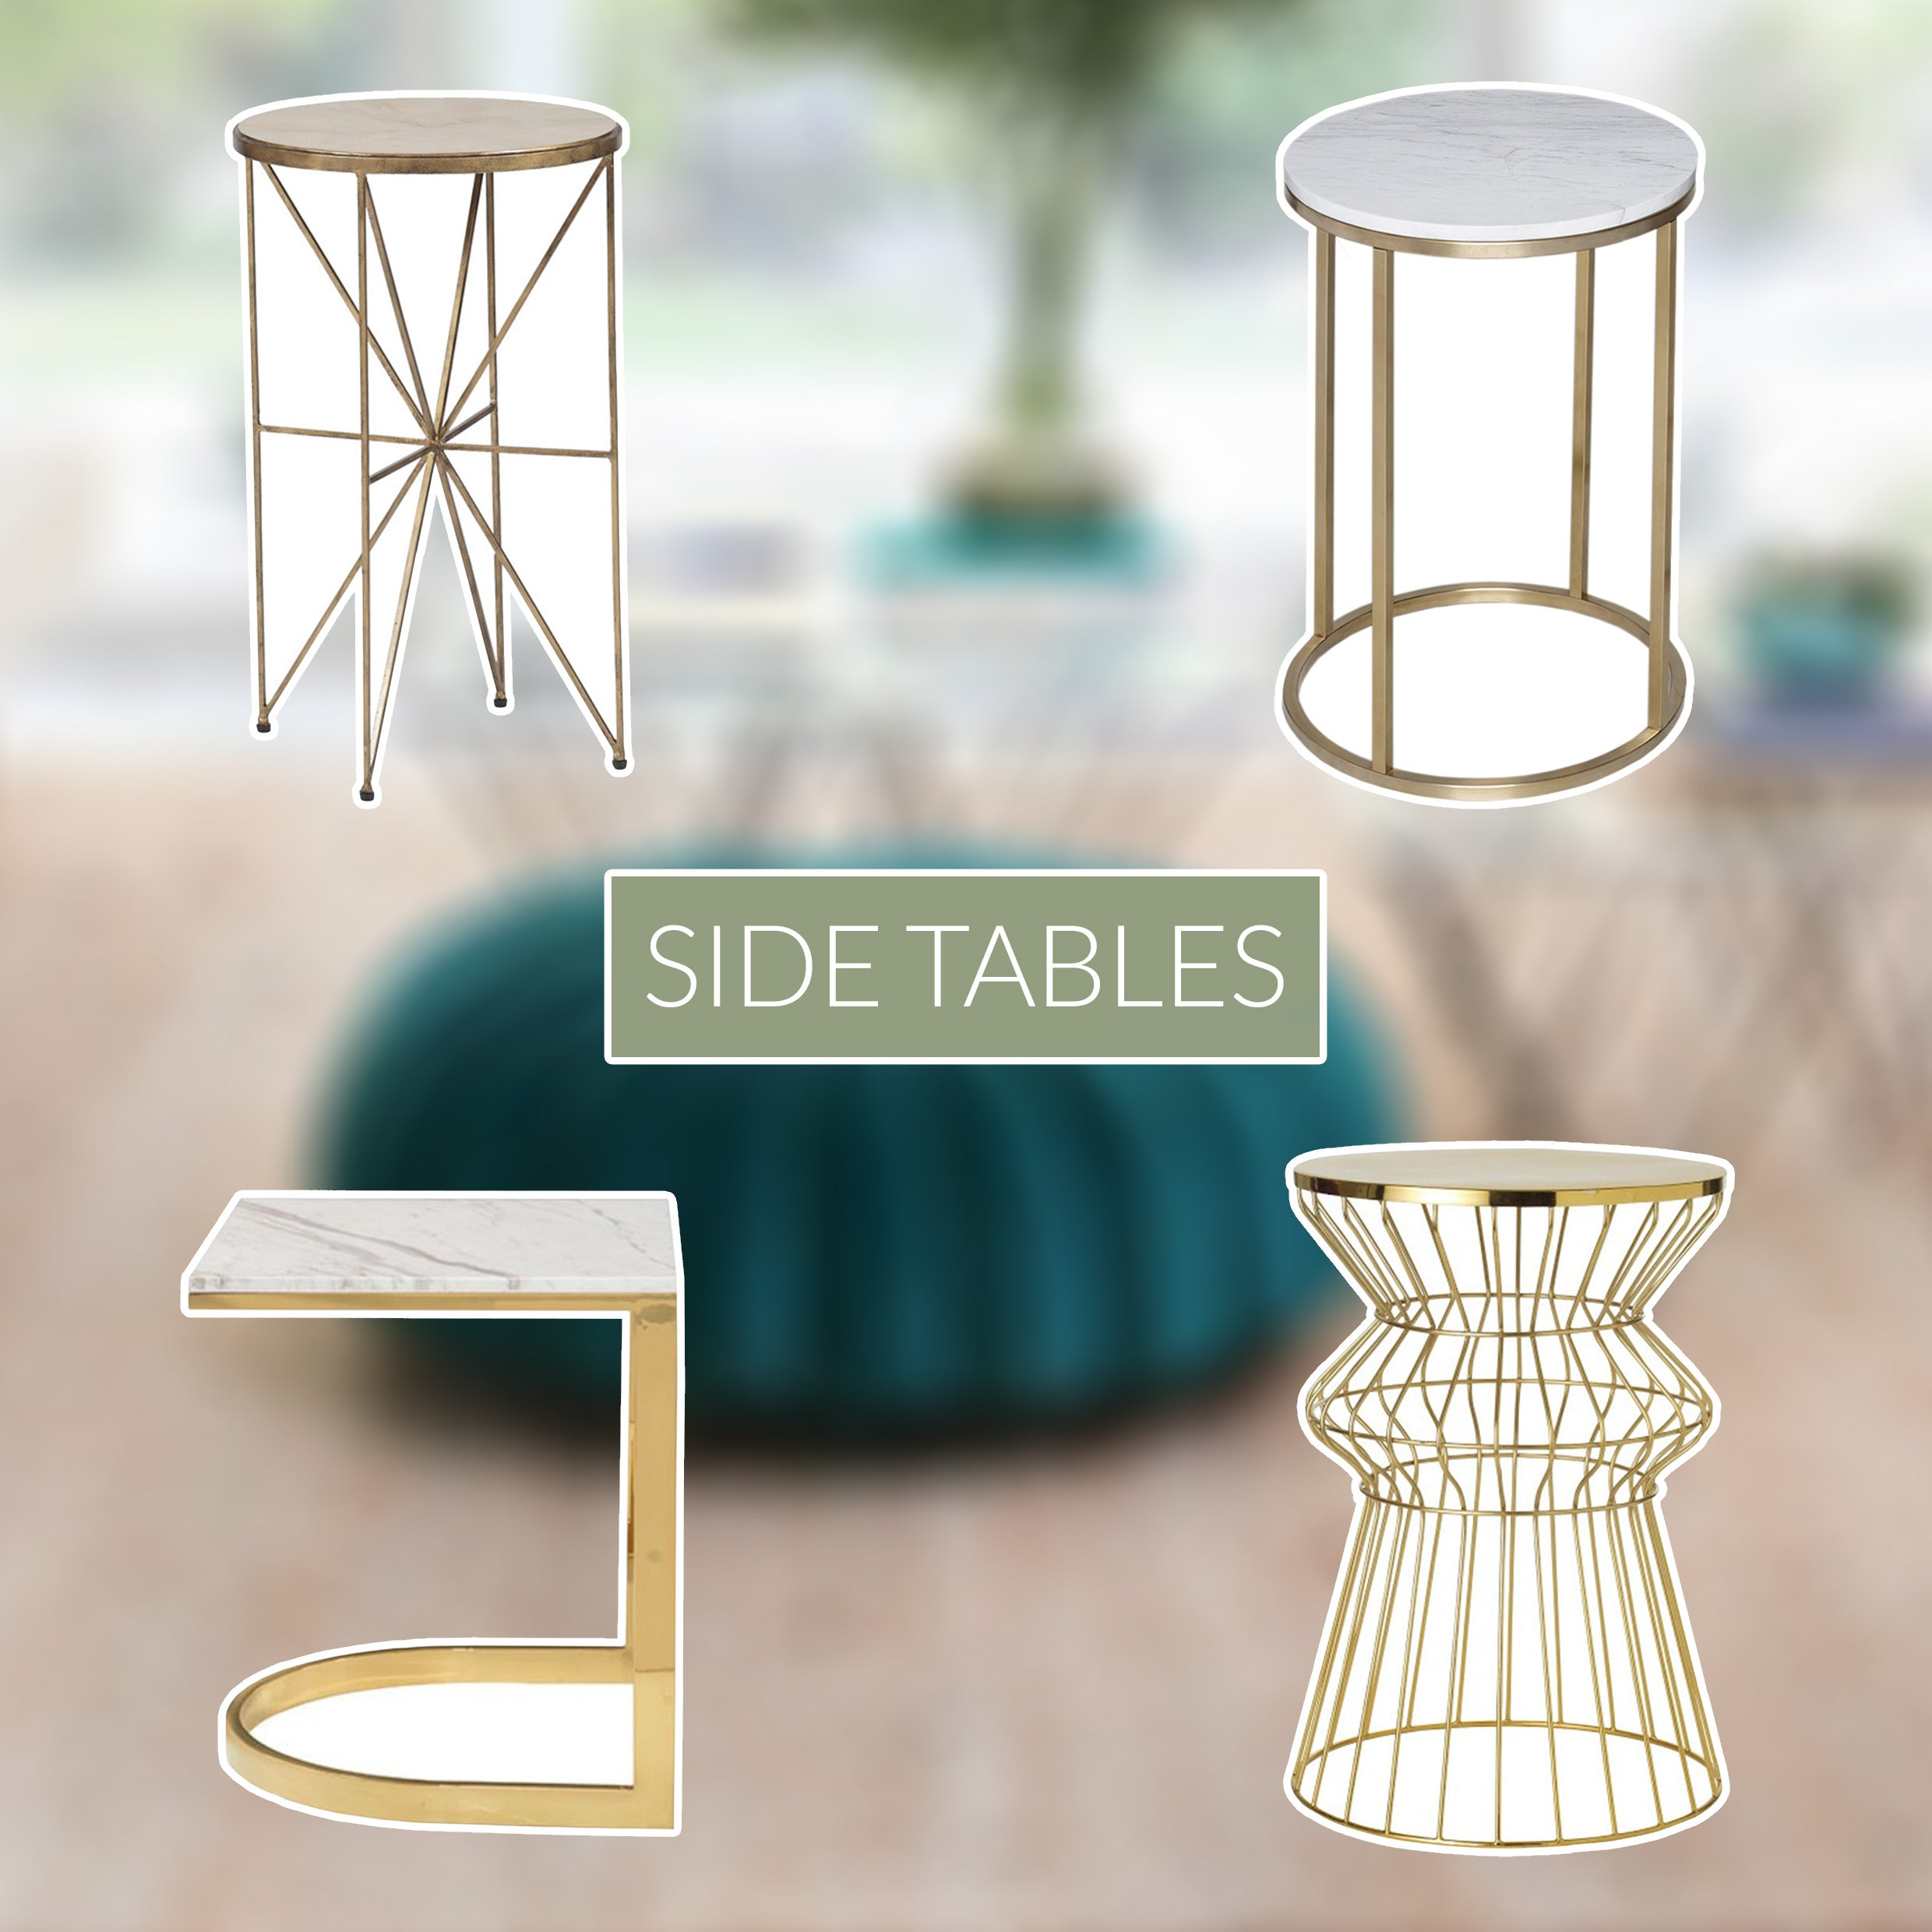 Palm Springs Side Table Inspiration and Furniture Design